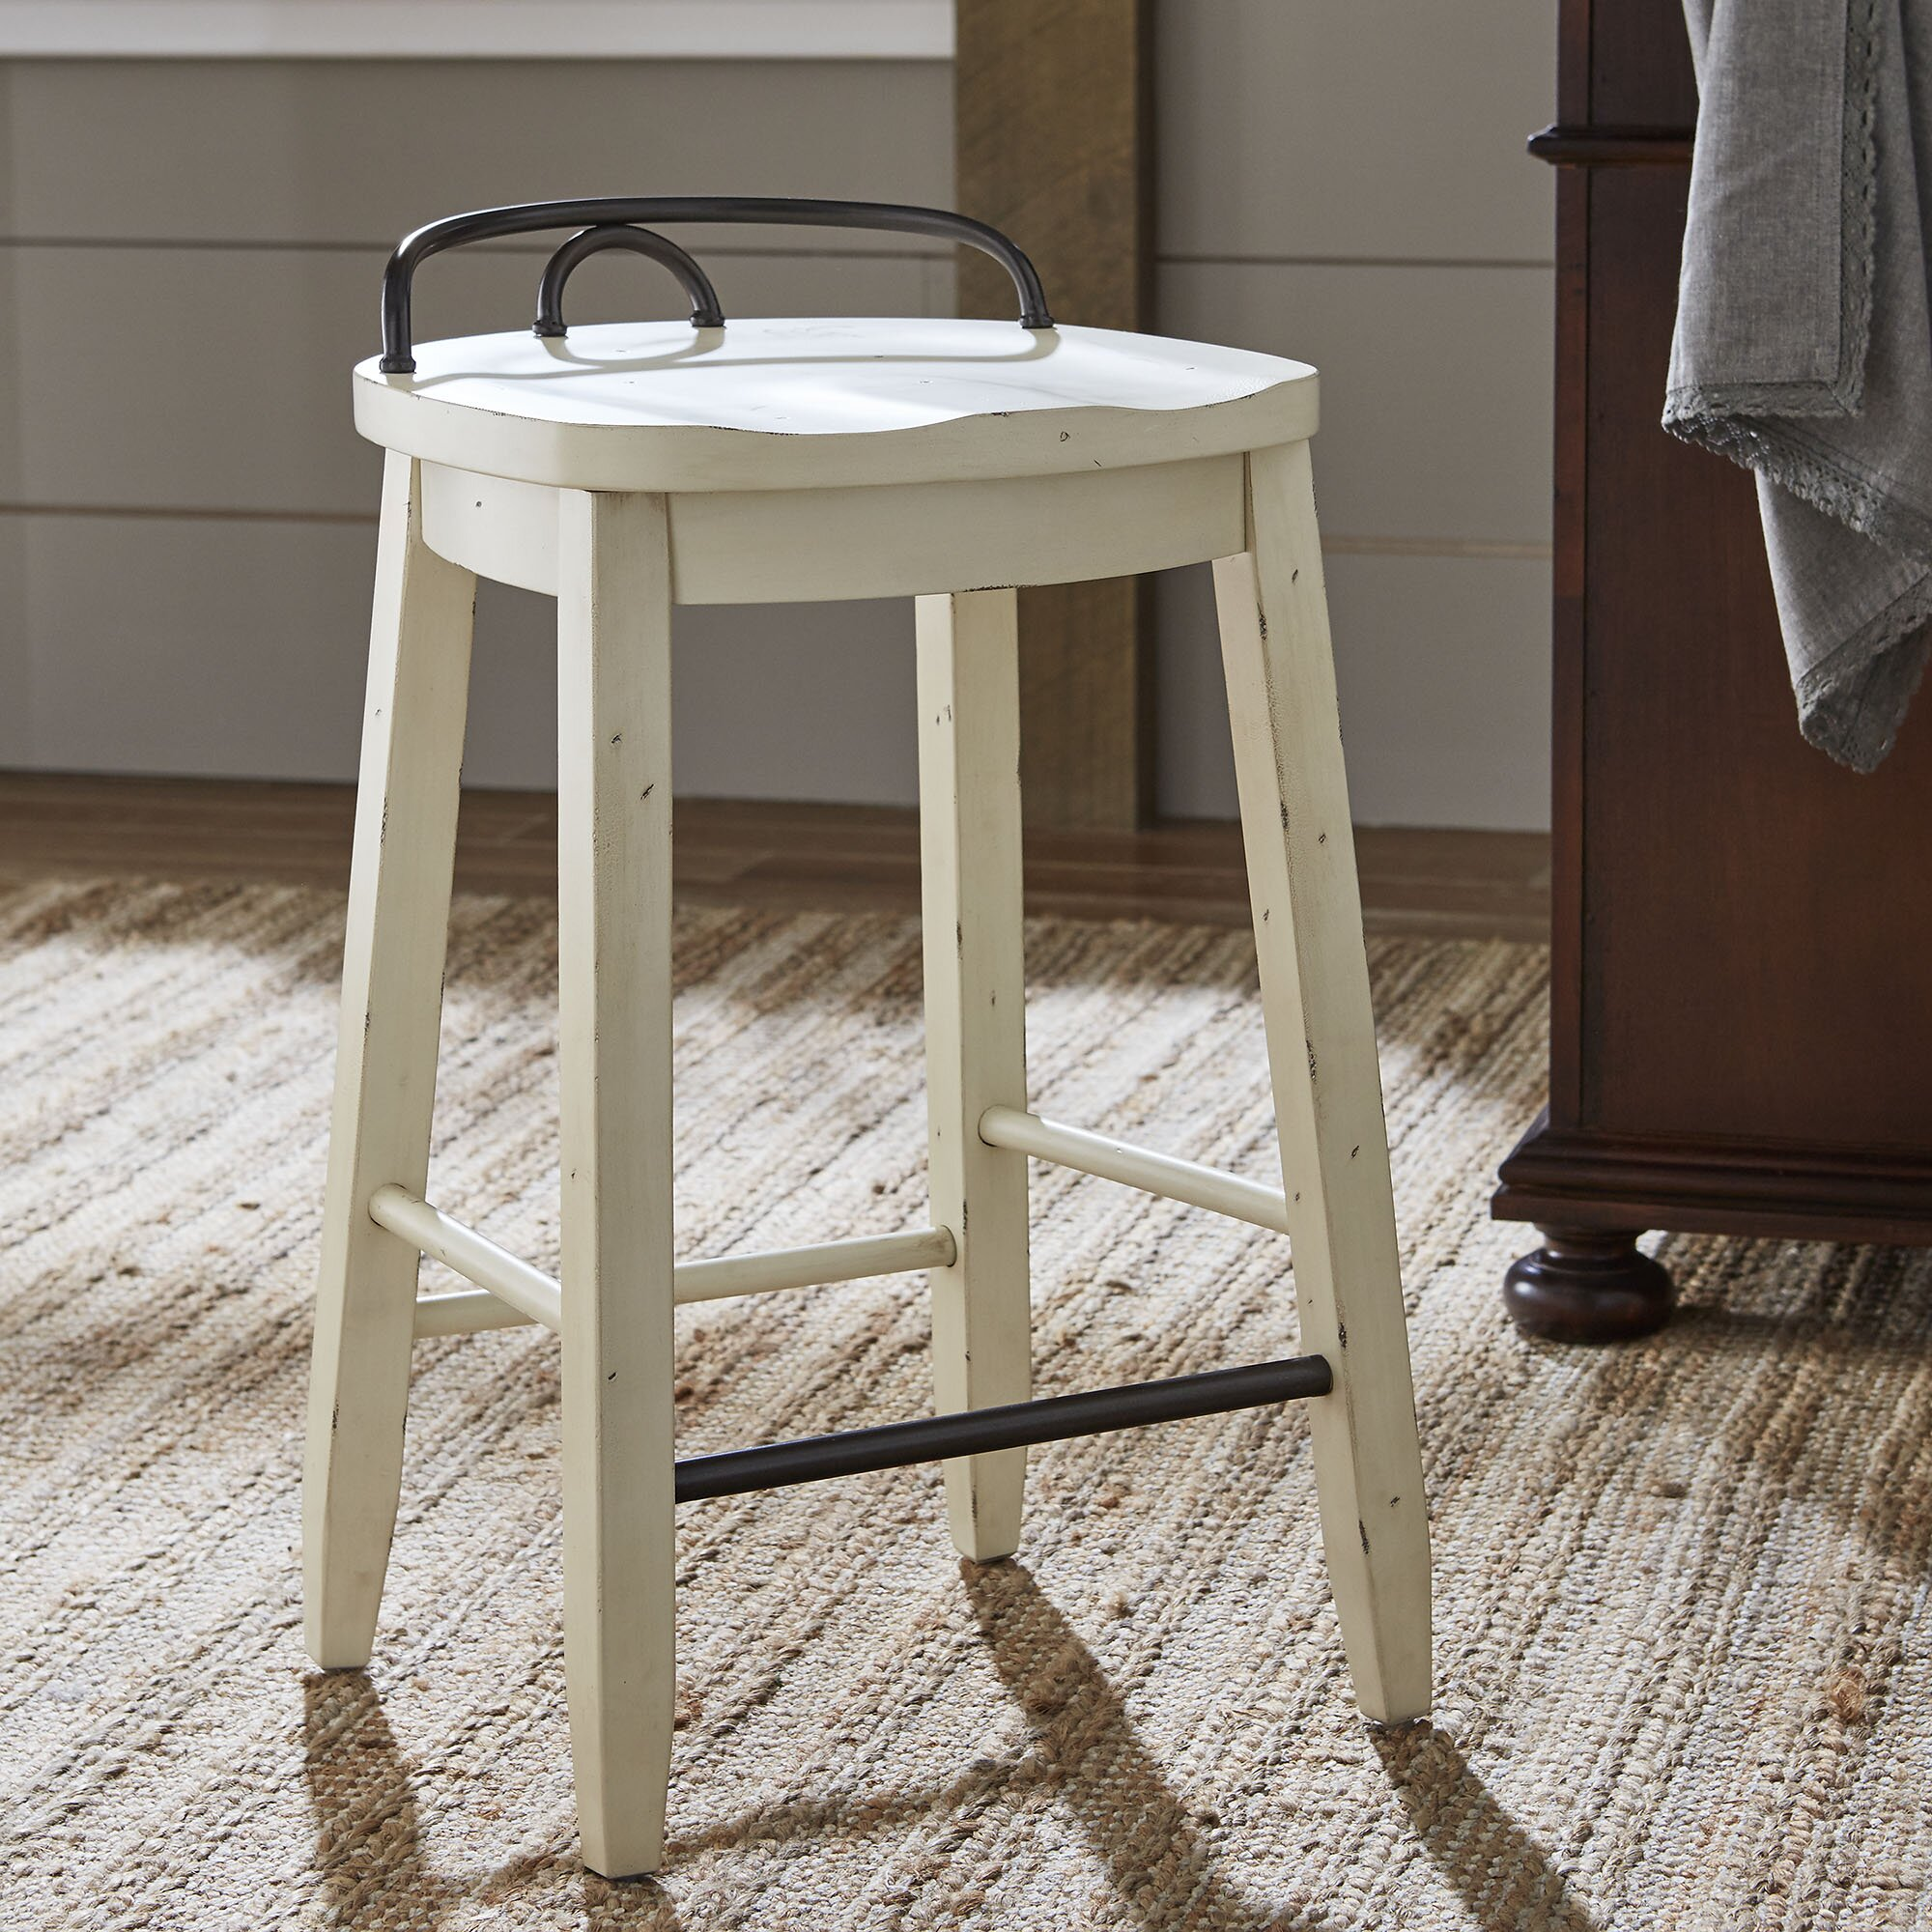 Birch Lane Piedmont Counter Height Stool amp Reviews  : Birch Lane Piedmont Counter Height Stool from www.wayfair.ca size 2000 x 2000 jpeg 782kB